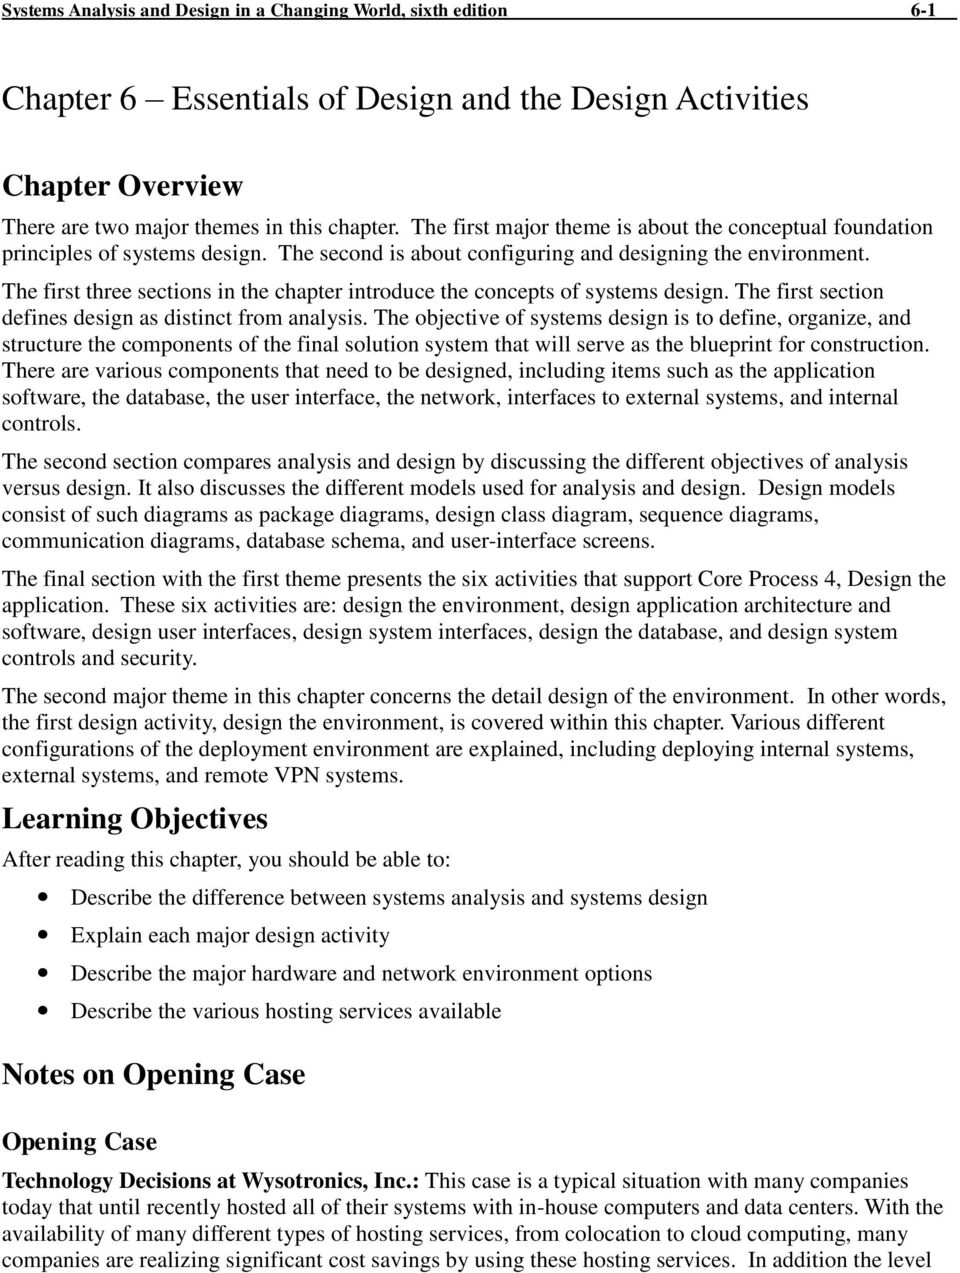 The first three sections in the chapter introduce the concepts of systems design. The first section defines design as distinct from analysis.